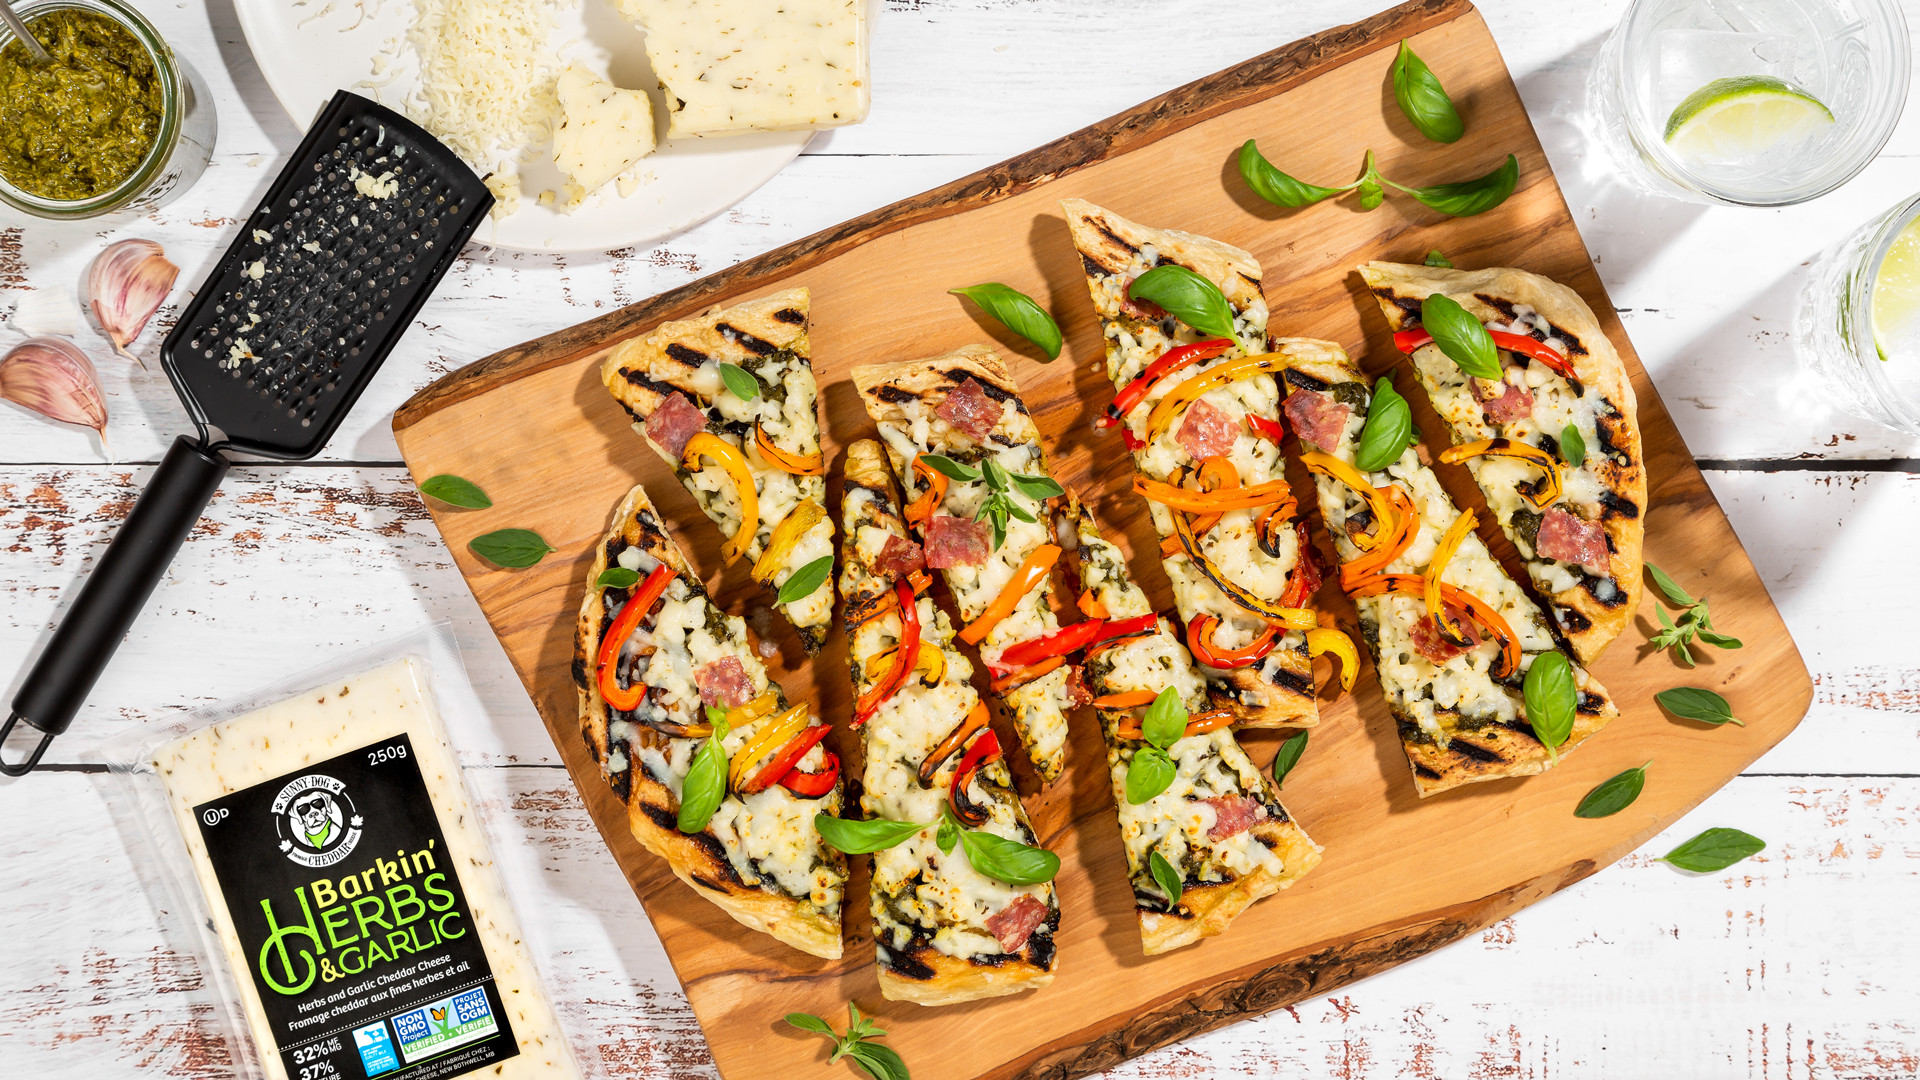 Win a Bothwell Cheese Sunny Dog Barkin' Herb & Cheddar prize pack | Flat bread made with Sunny Dog Barkin' Herb & Cheddar